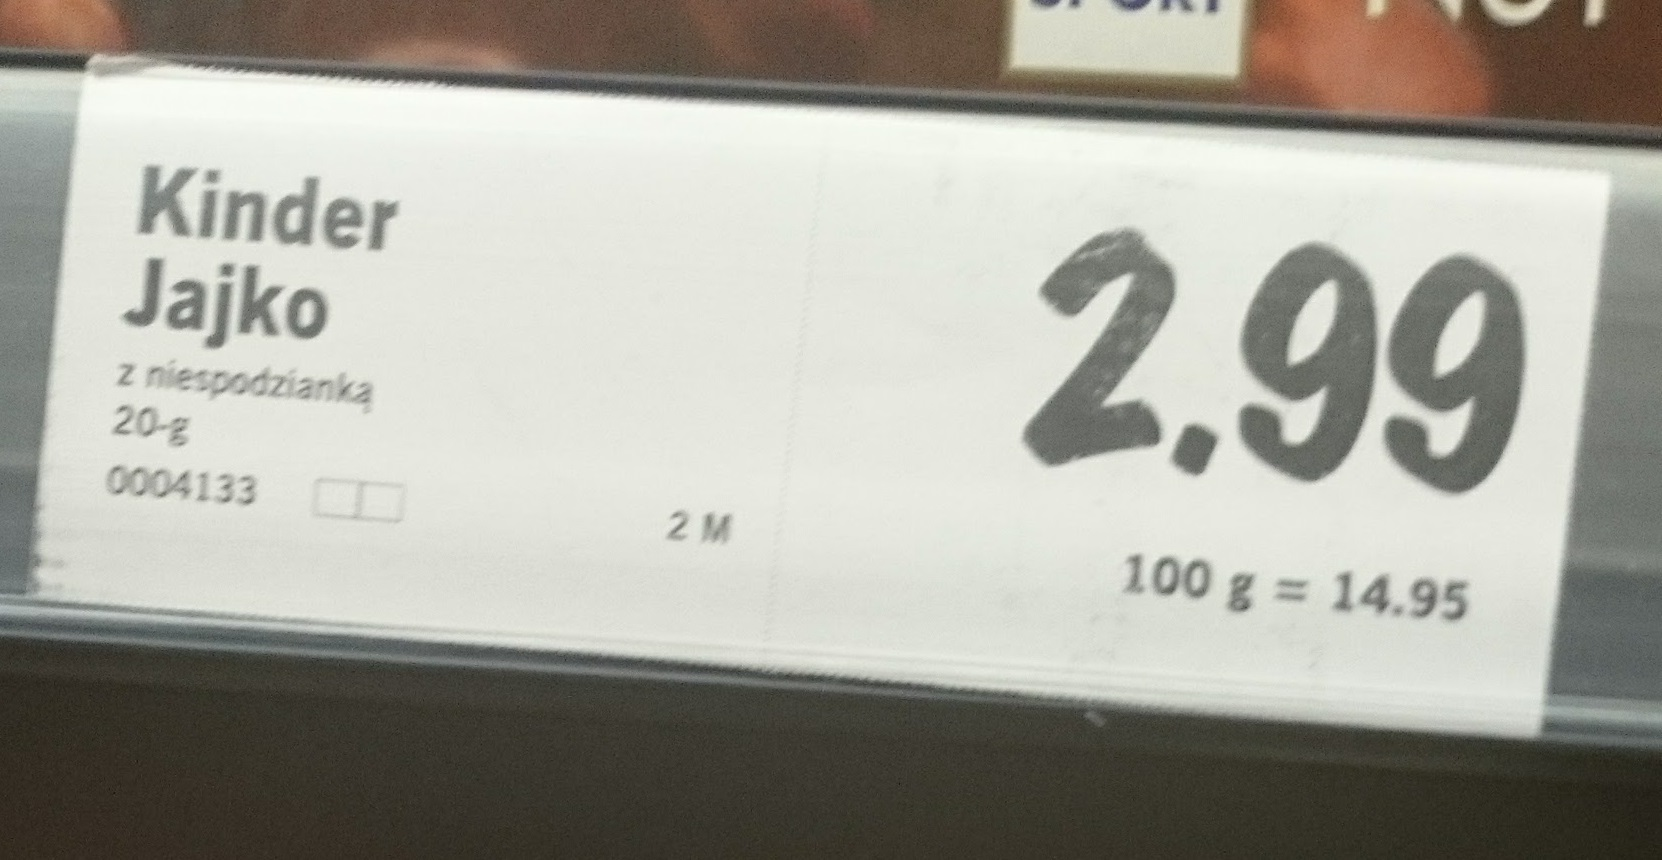 You get 20 grams of chocolate in the egg plus the toys for about 75 cents in today's US dollars. 2.99 zl.